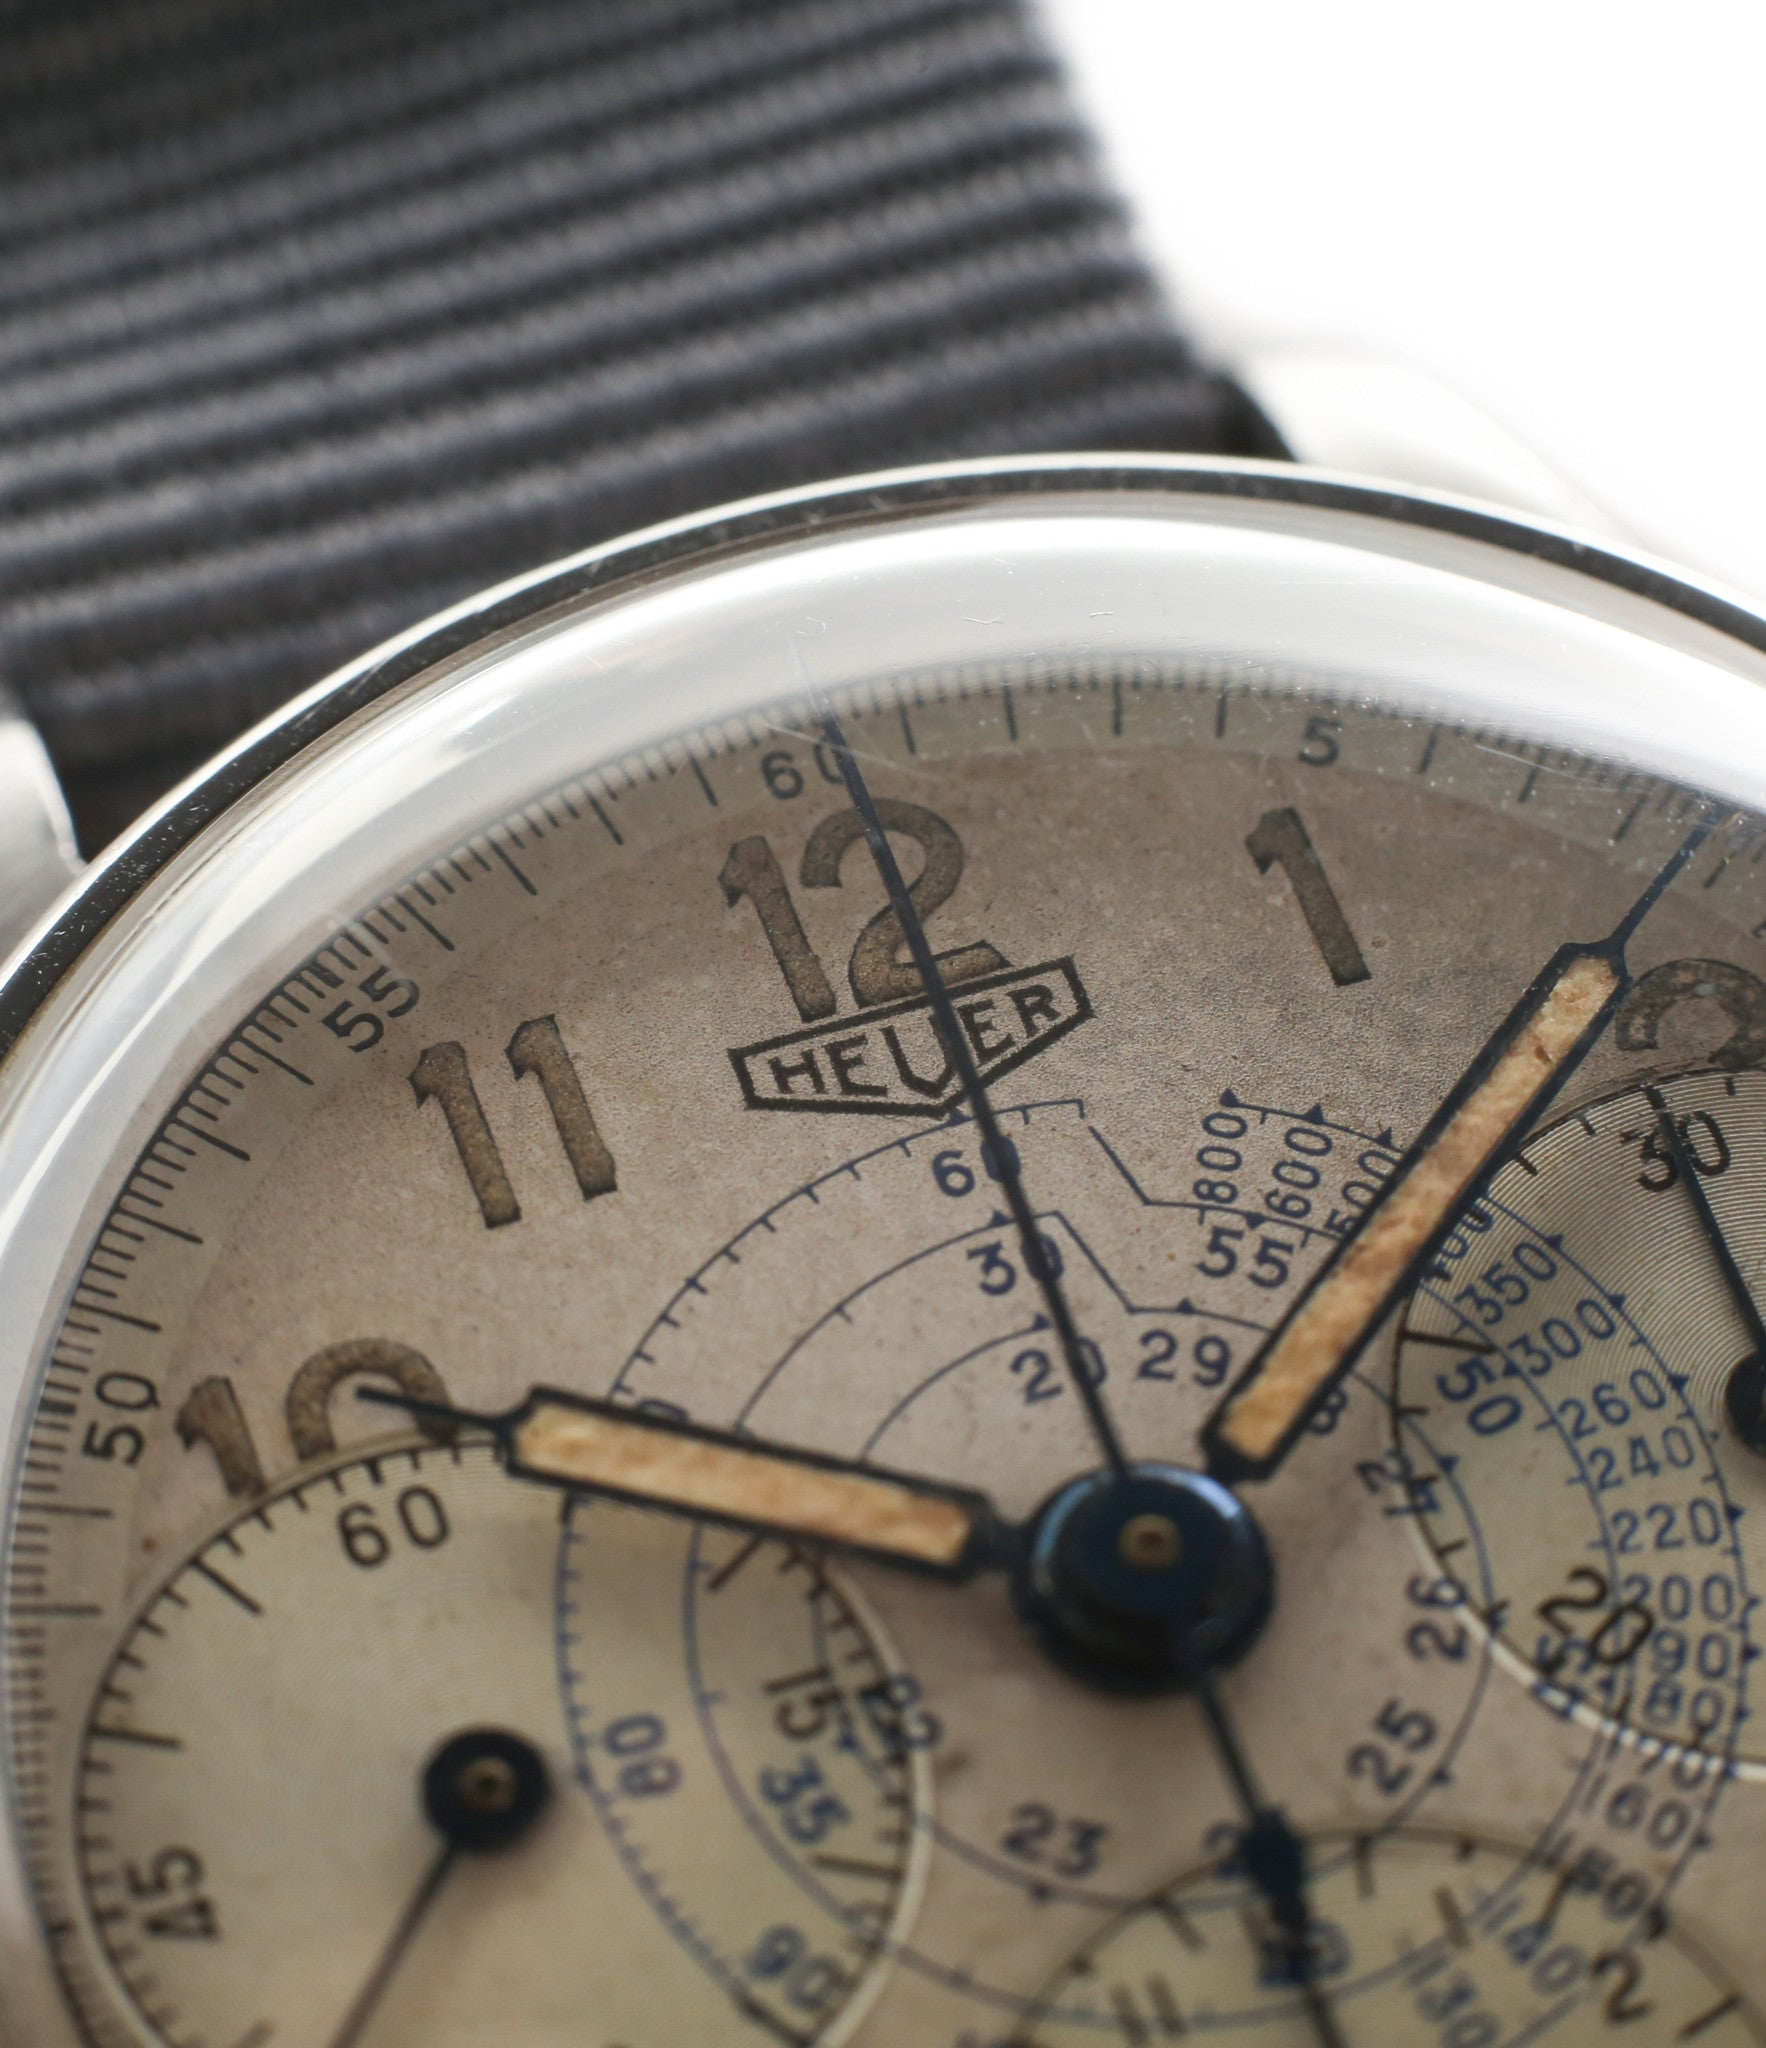 syringe hand vintage Heuer Chronograph steel watch online at A Collected Man London